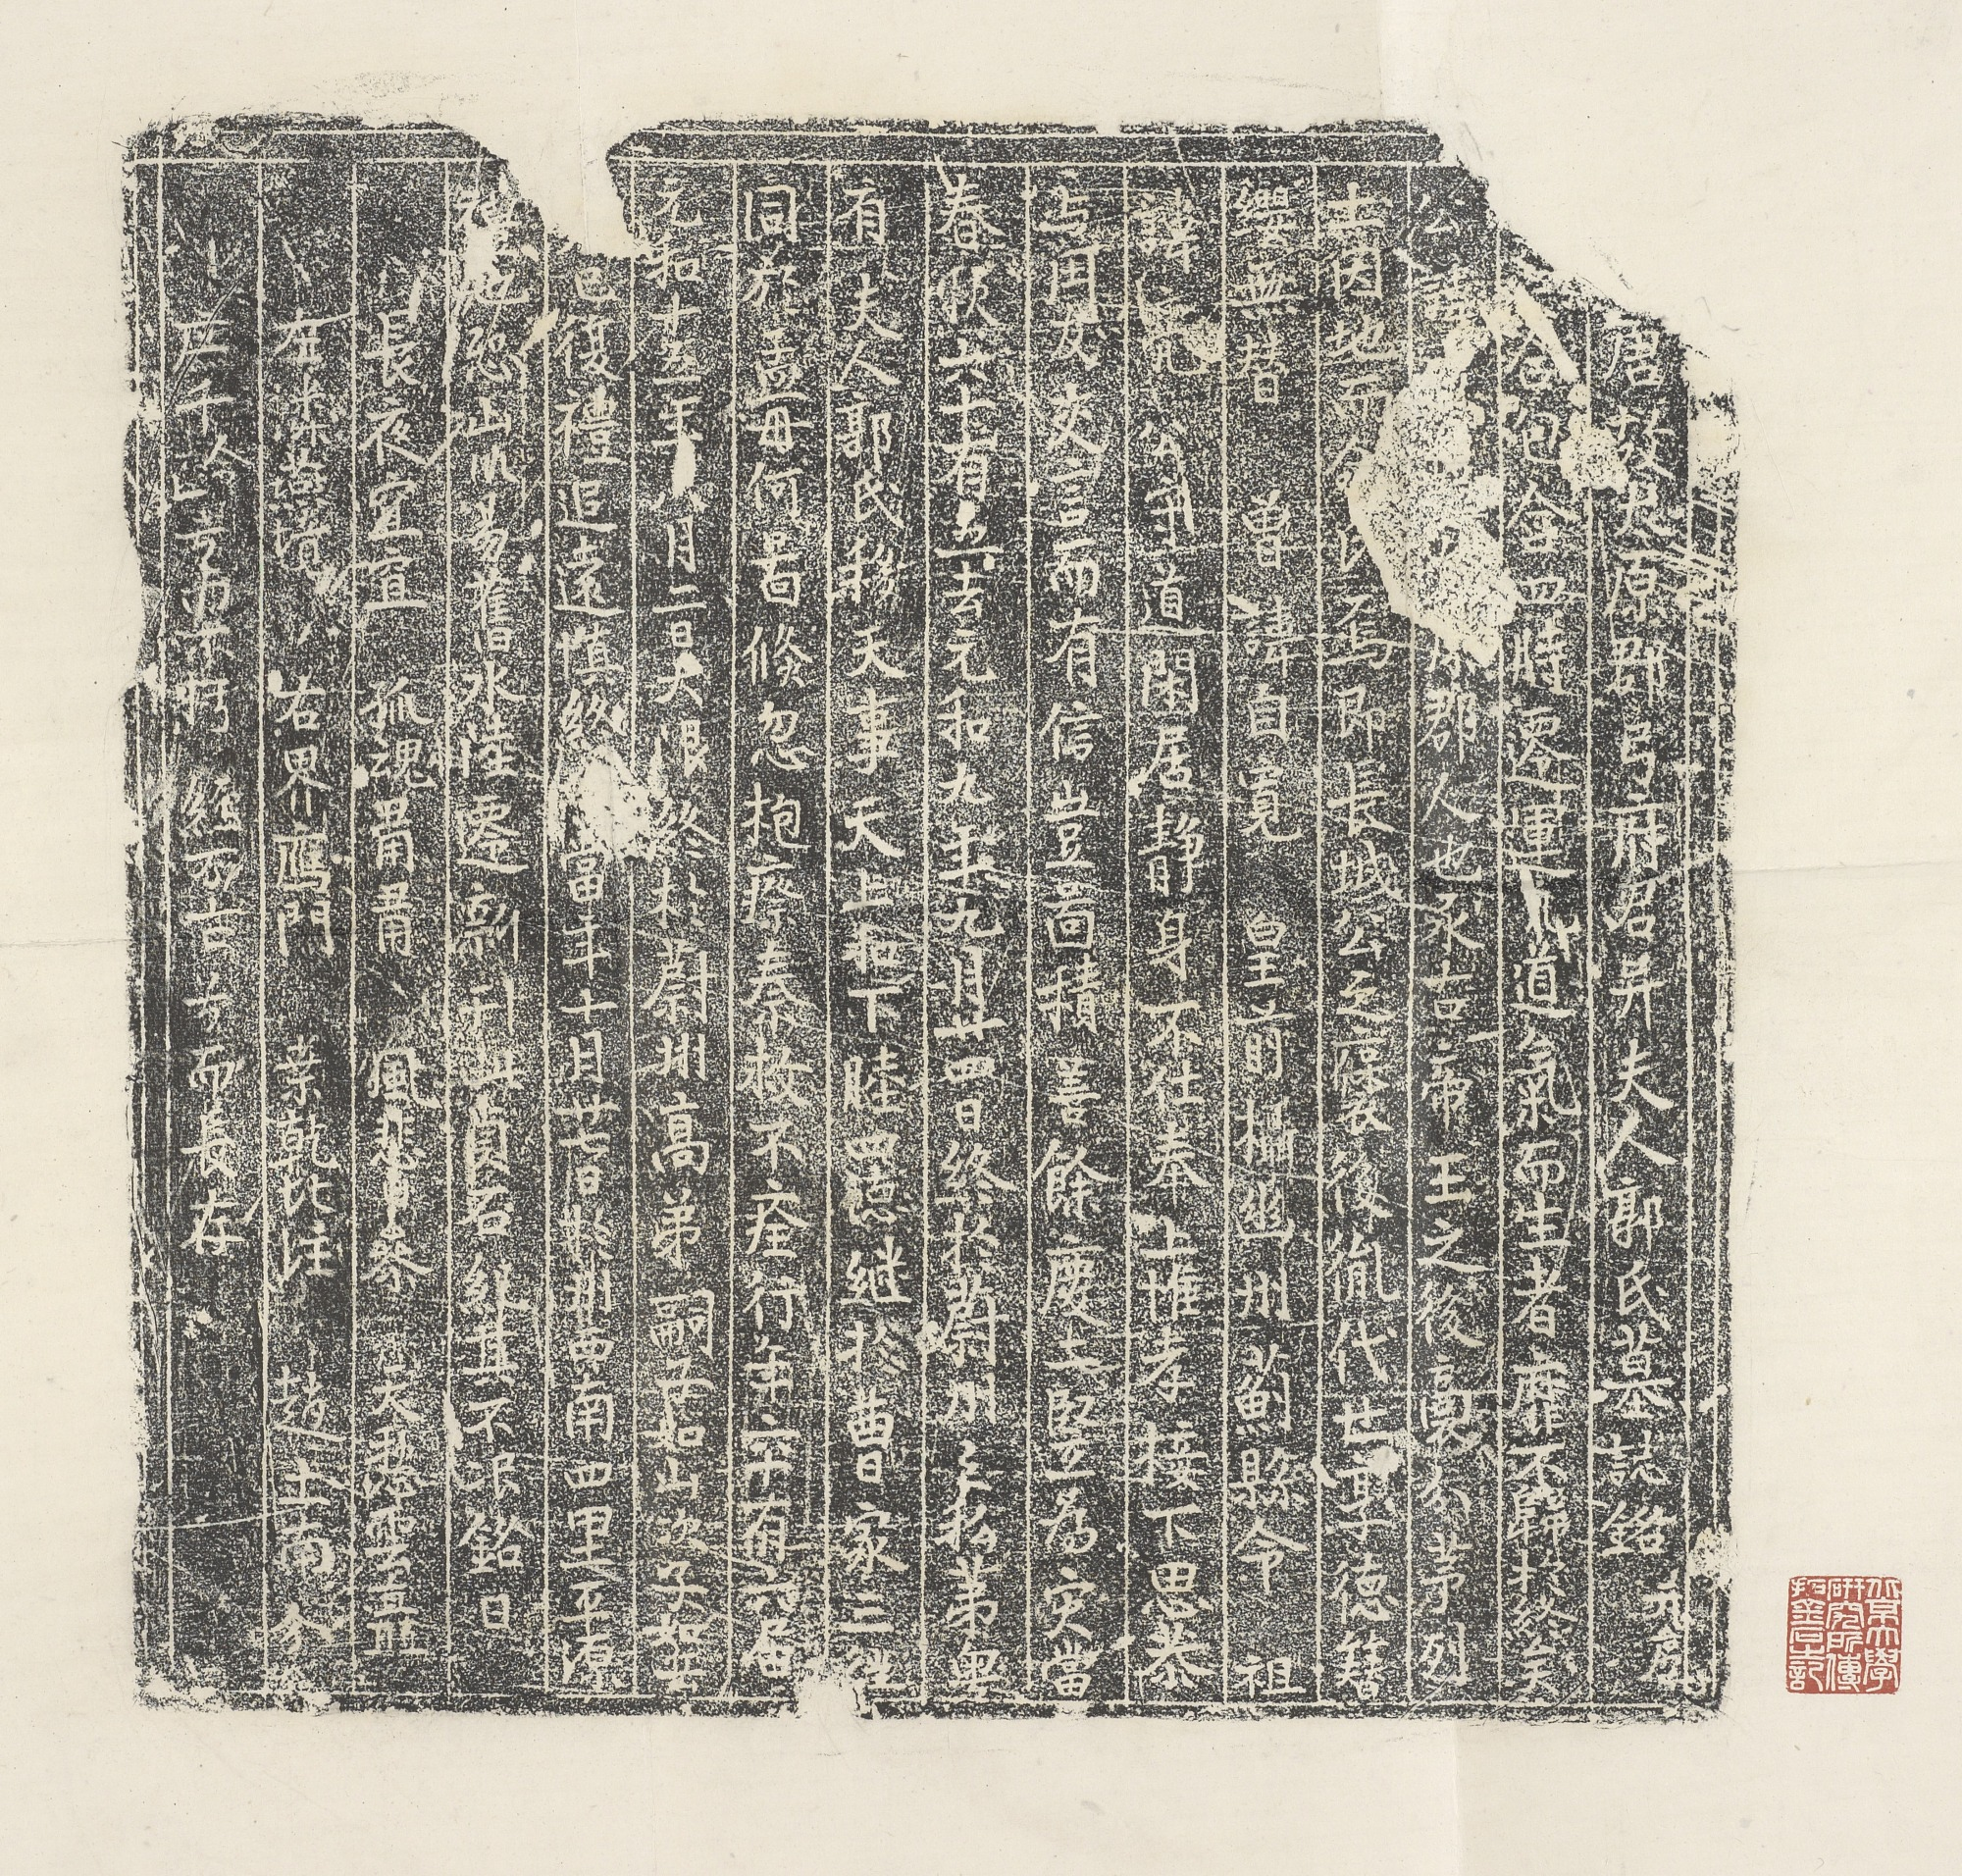 Funerary tablet with epitaph of Kung (name defaced)